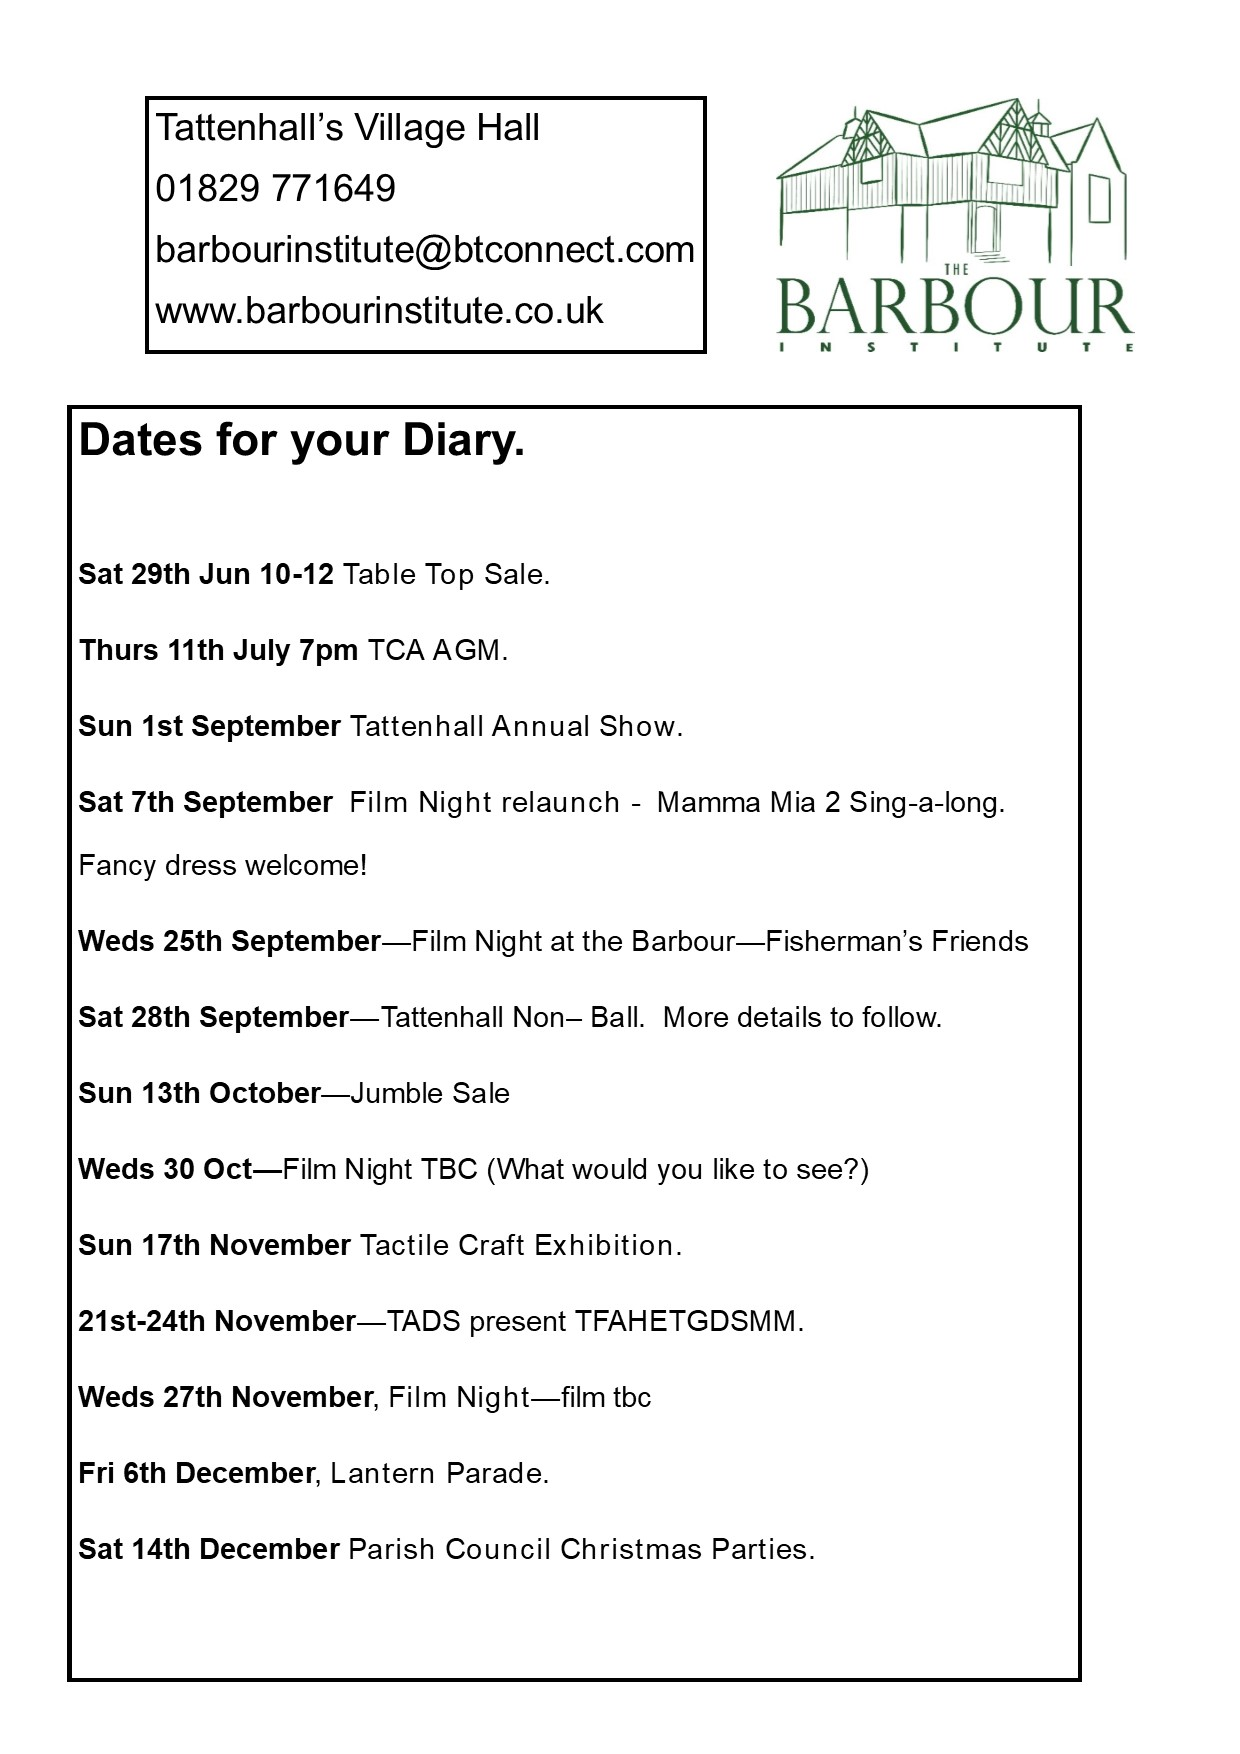 Dates For The Calendar What 39 s On At The Barbour Institute